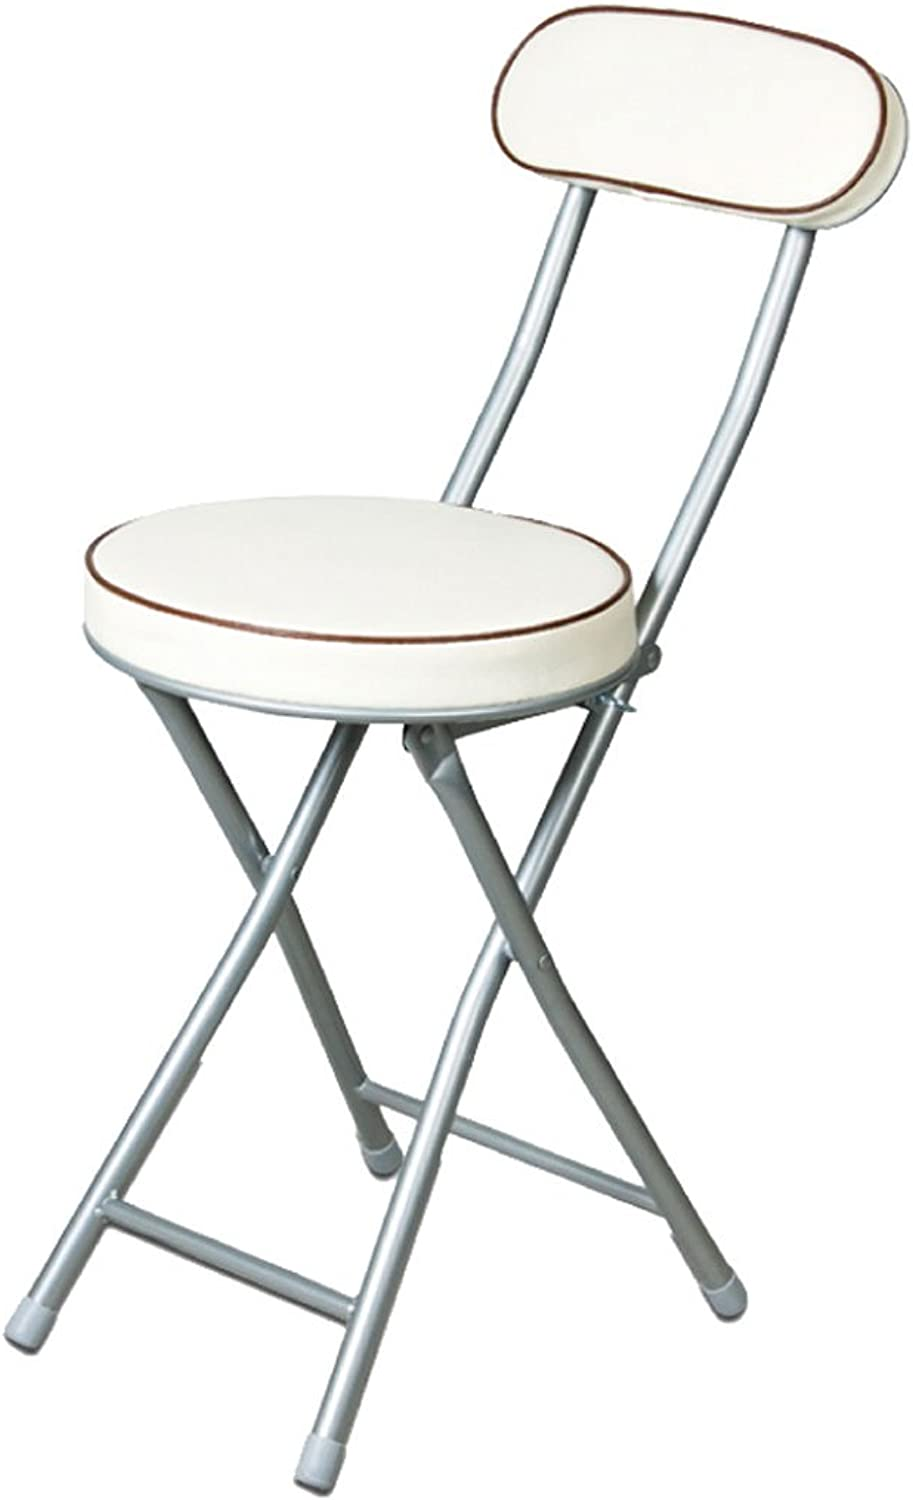 CQOZ Japanese-Style Back Stool Folding Chair Small Round Chair Portable Leisure Computer Chair Office Dining Chair Folding Chair (color   White)